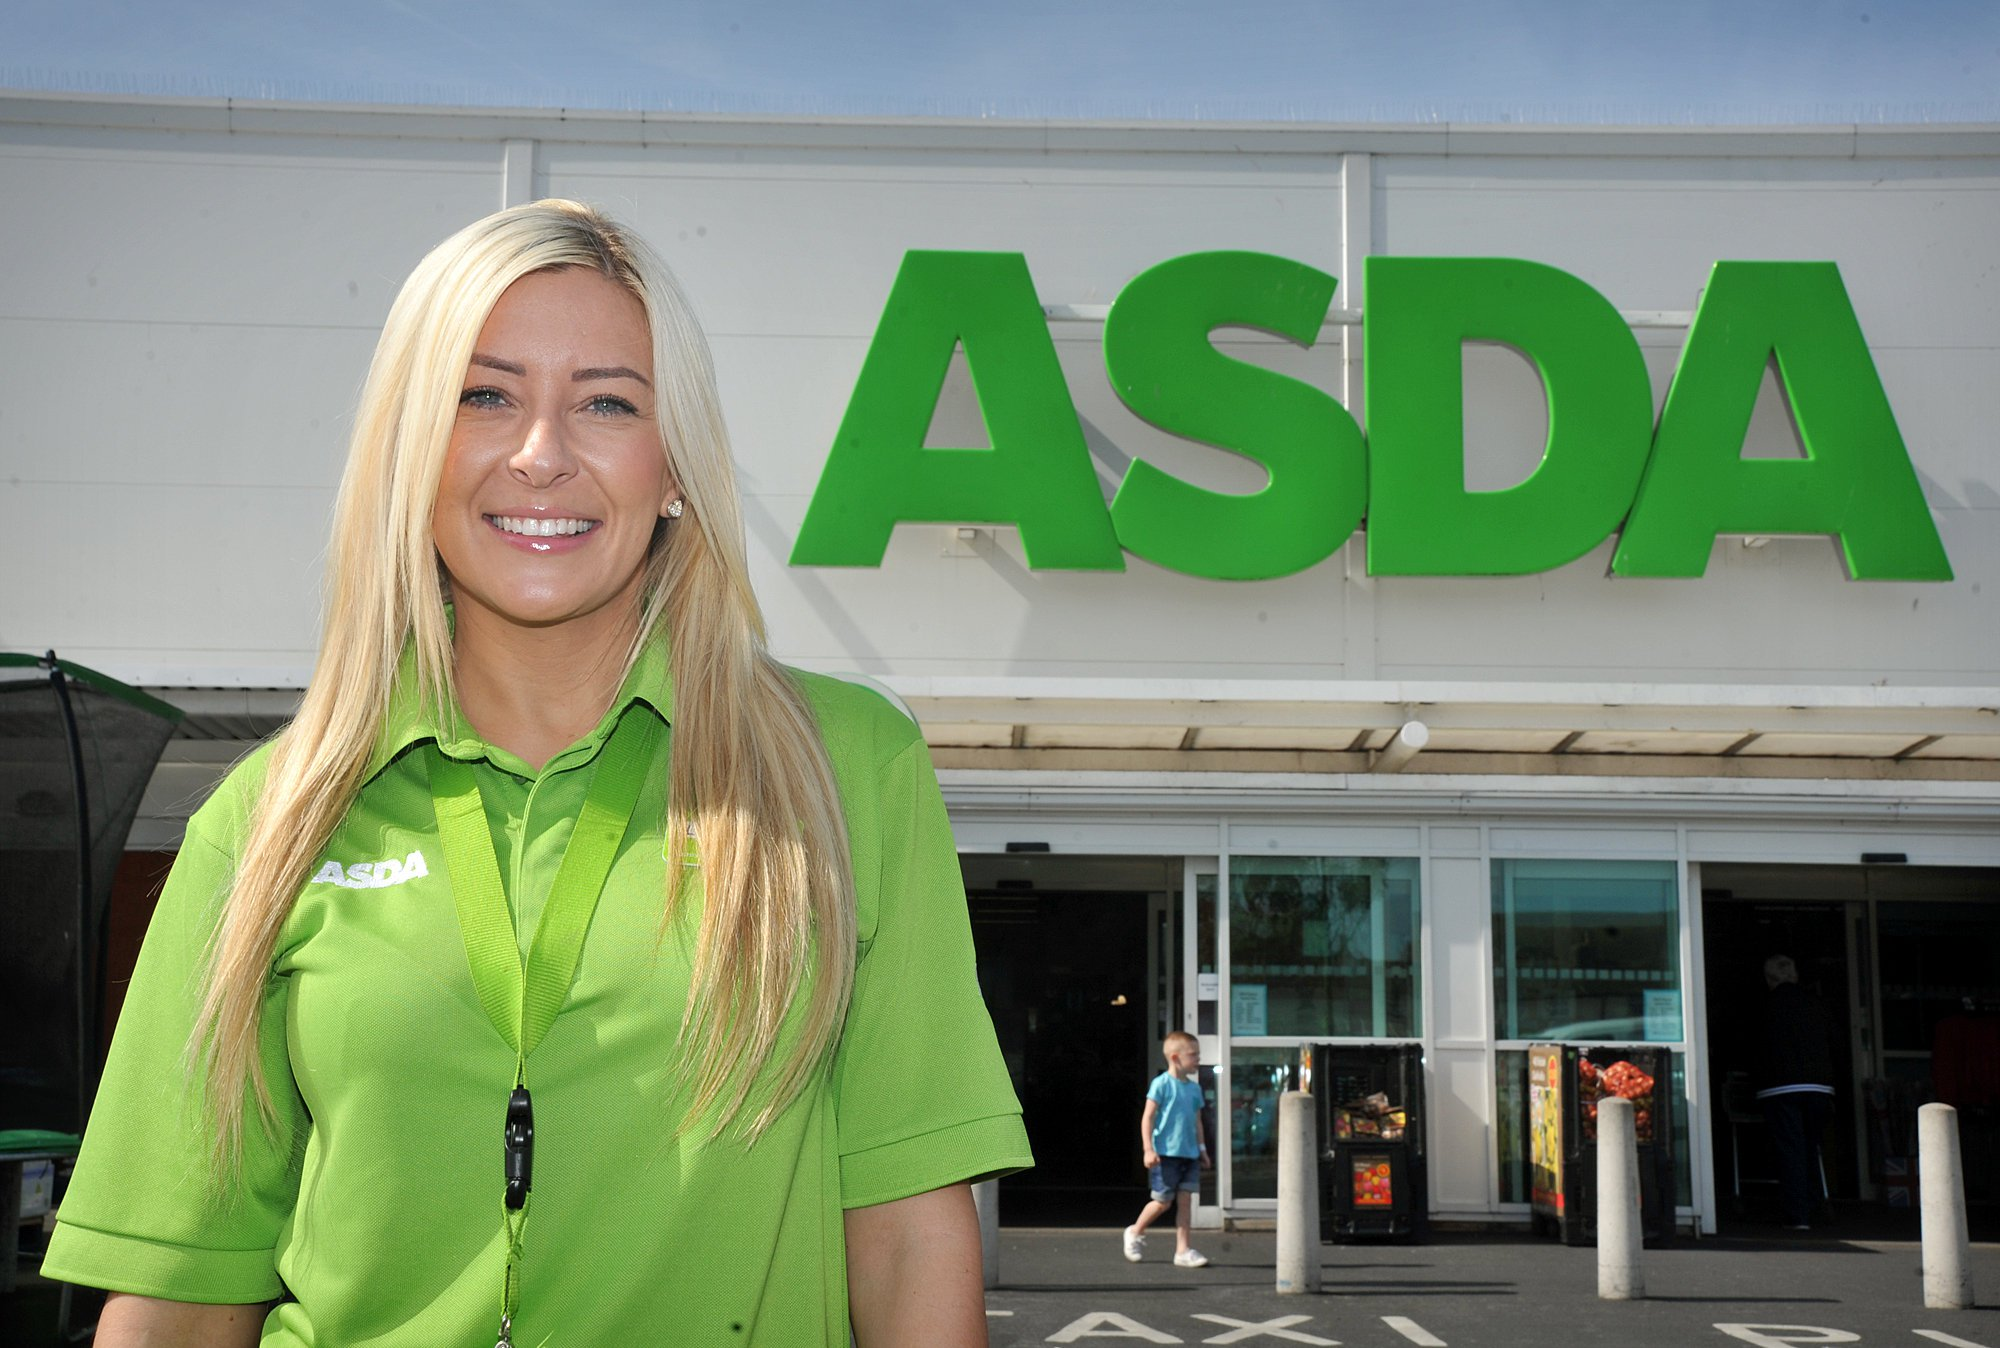 Over 100 trolleys go missing after Asda stops chaining them up